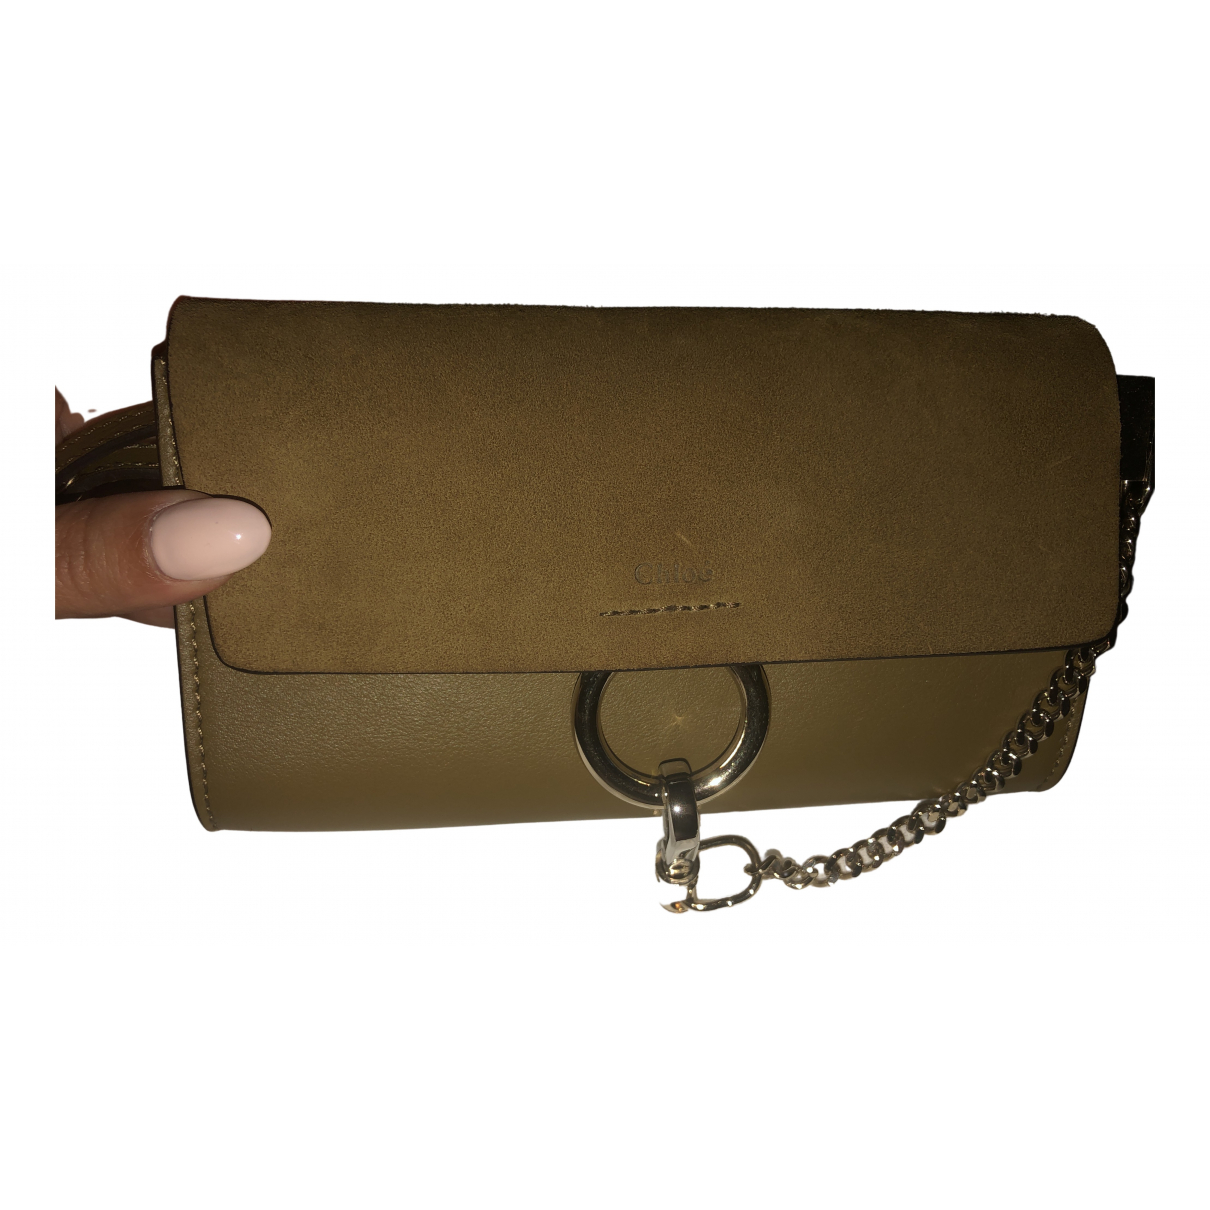 Chloé Faye Khaki Suede handbag for Women N